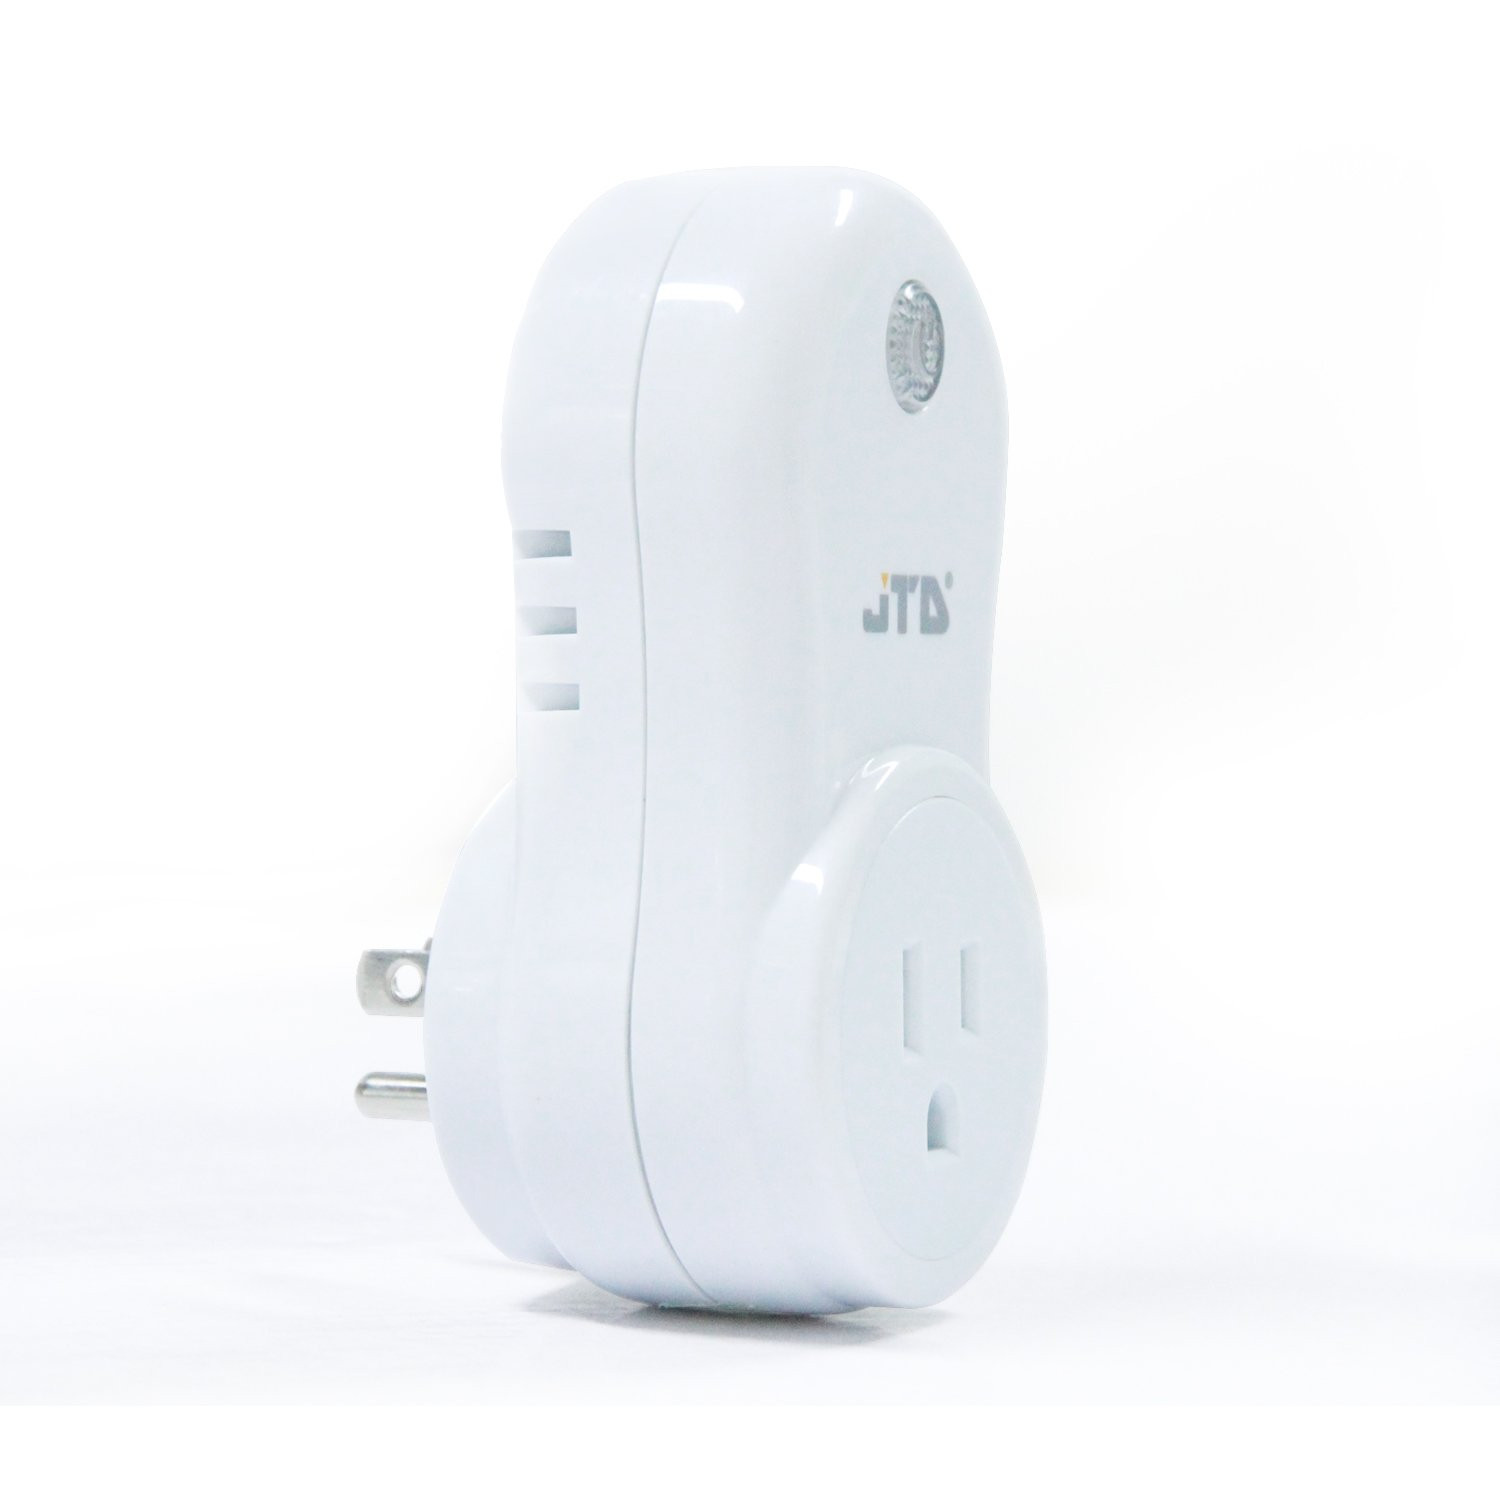 JTD Energy Saving Auto-programmable Wireless Remote Control Electrical Outlet Switch Outlet Plug (1Plug-1Remote Second Gen) by JTD (Image #3)